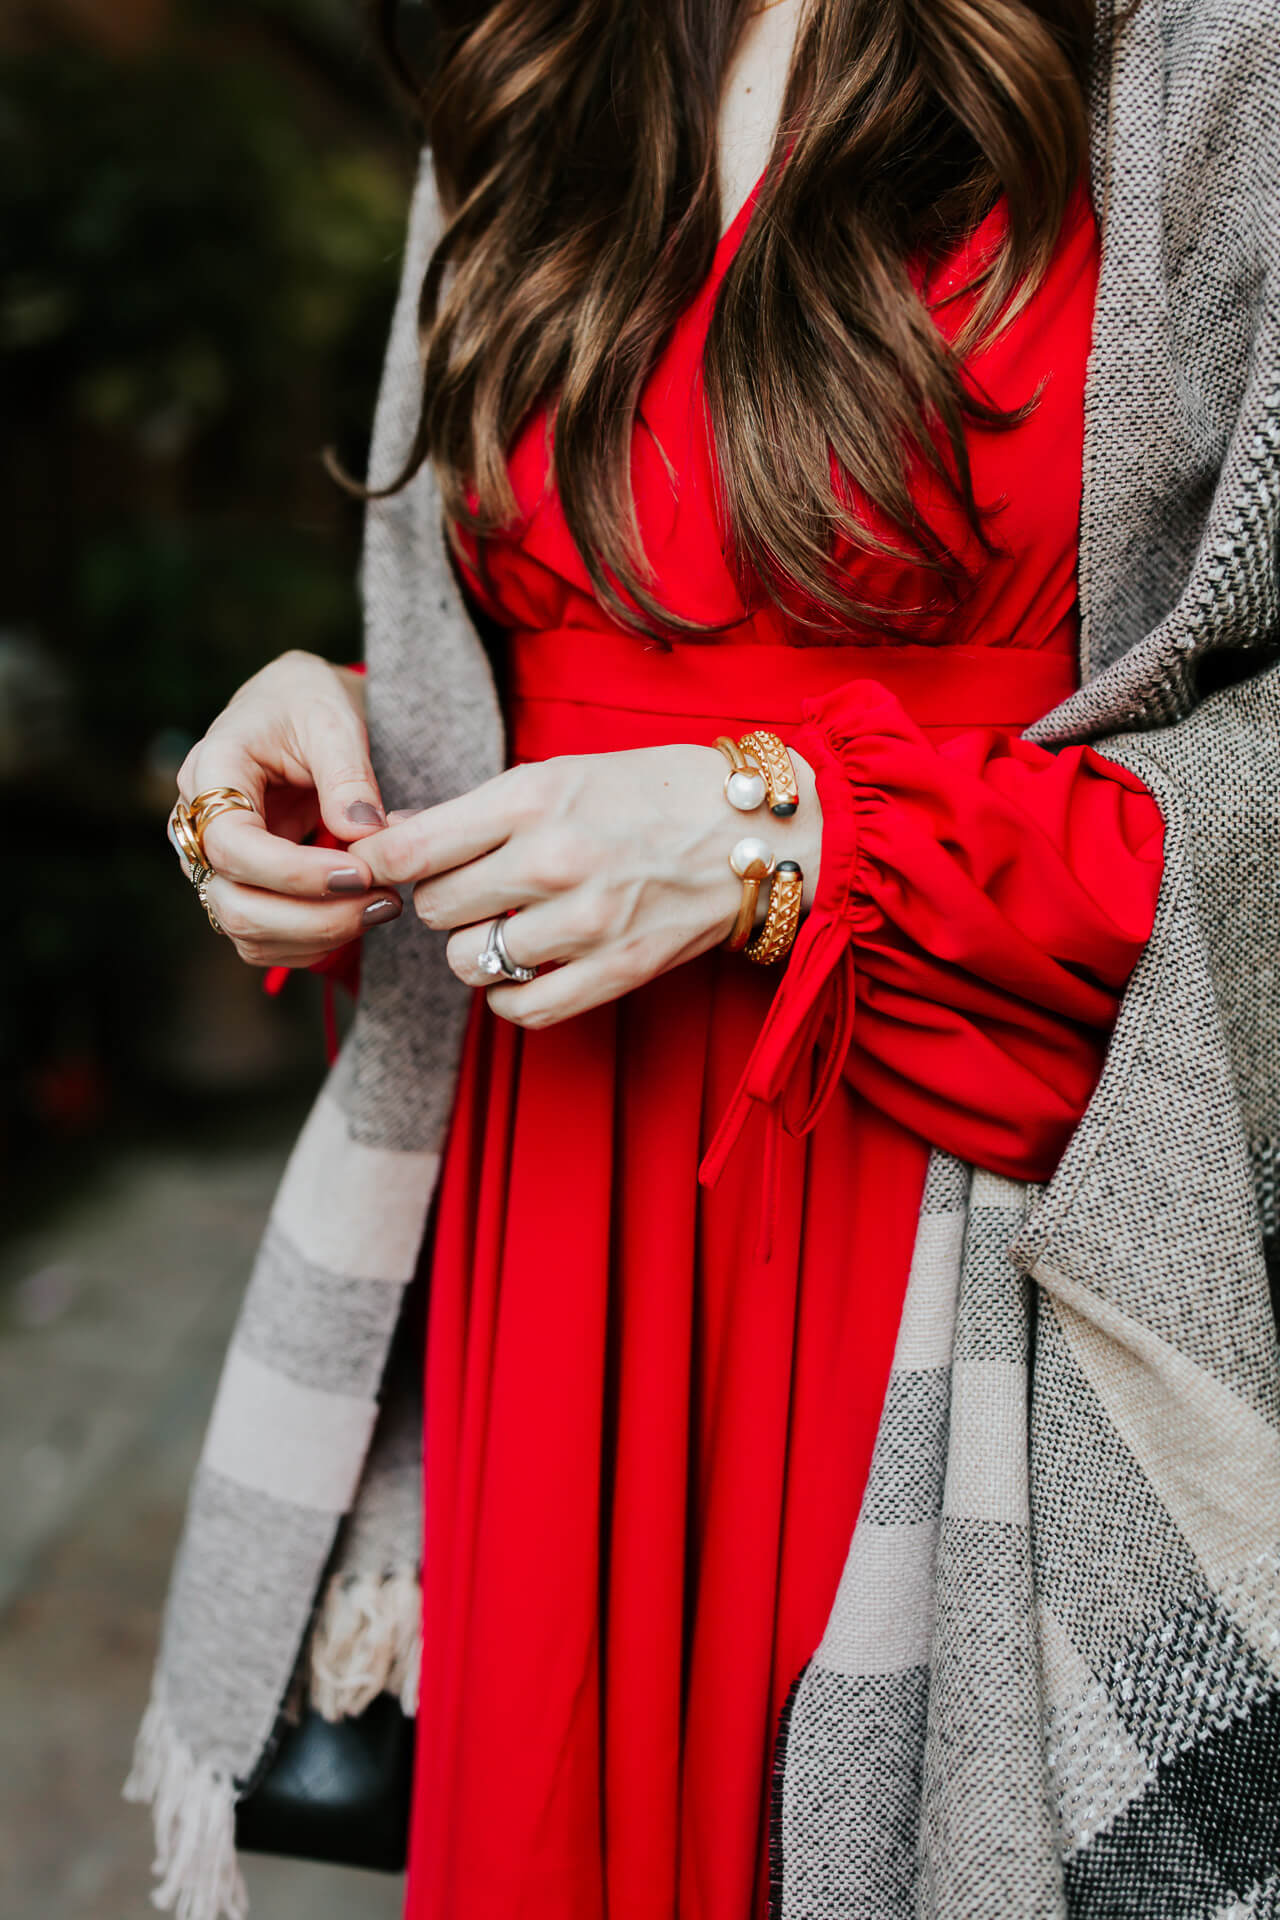 a stunning bright red dress for the fall and upcoming holidays